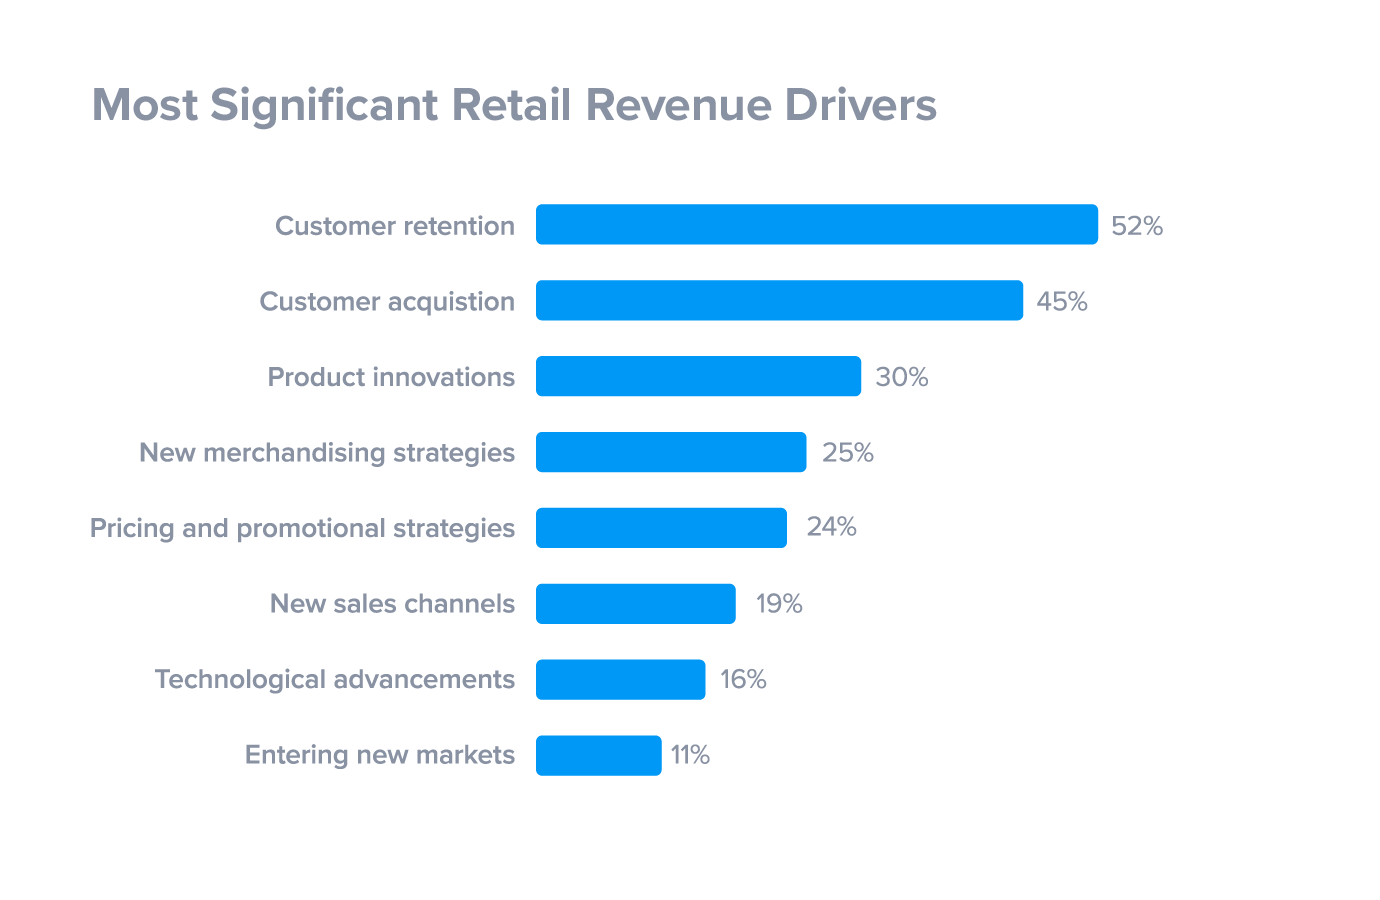 Customer retention as a significant revenue driver